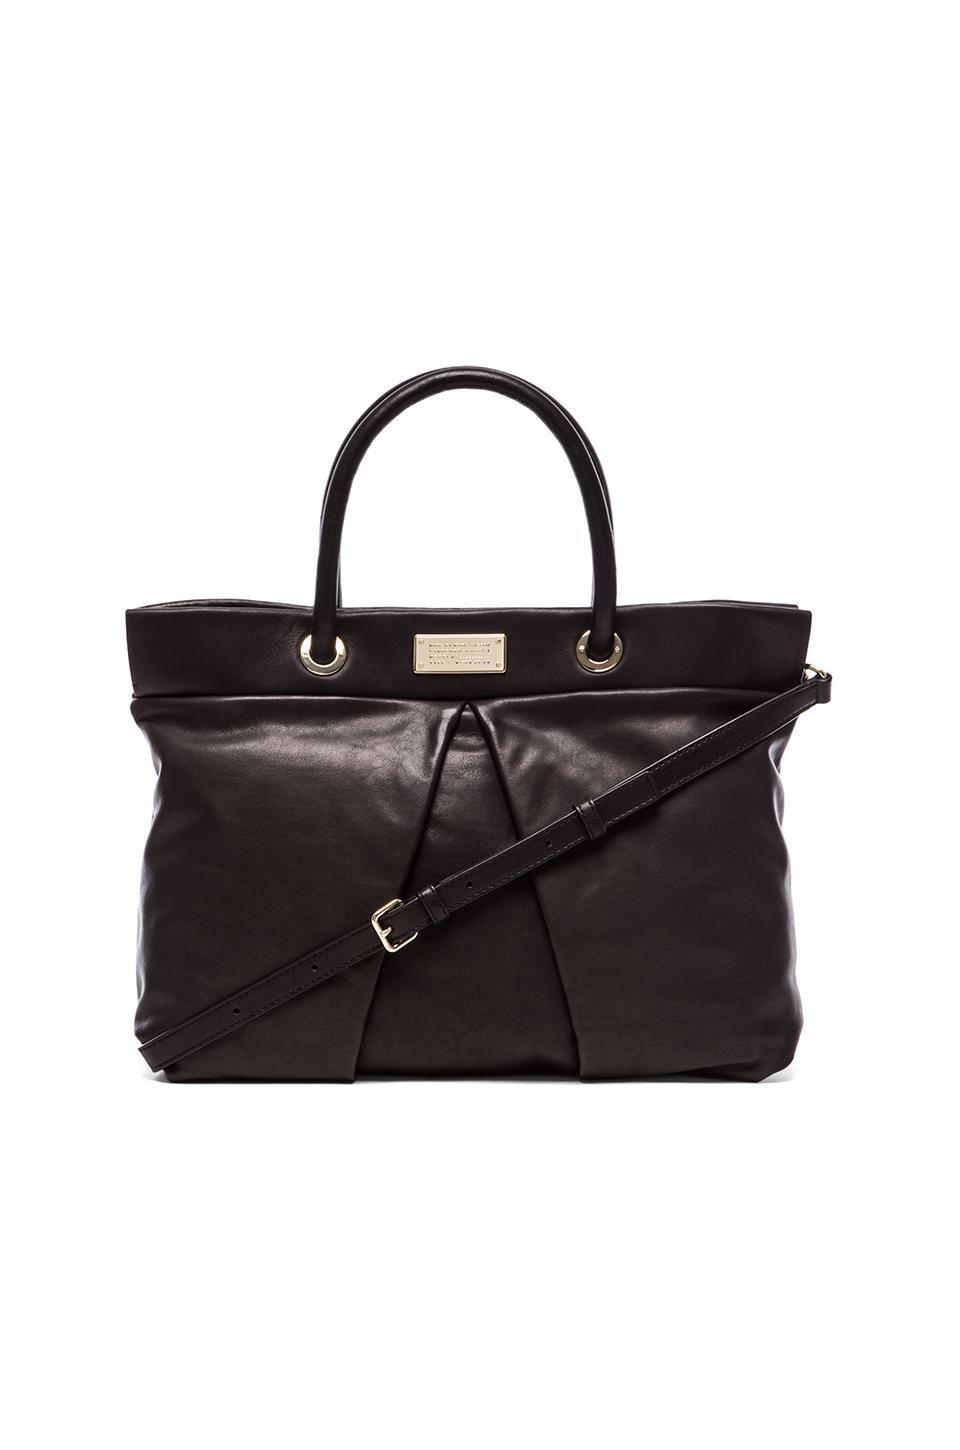 Marc by Marc Jacobs Marchive Tote in Black